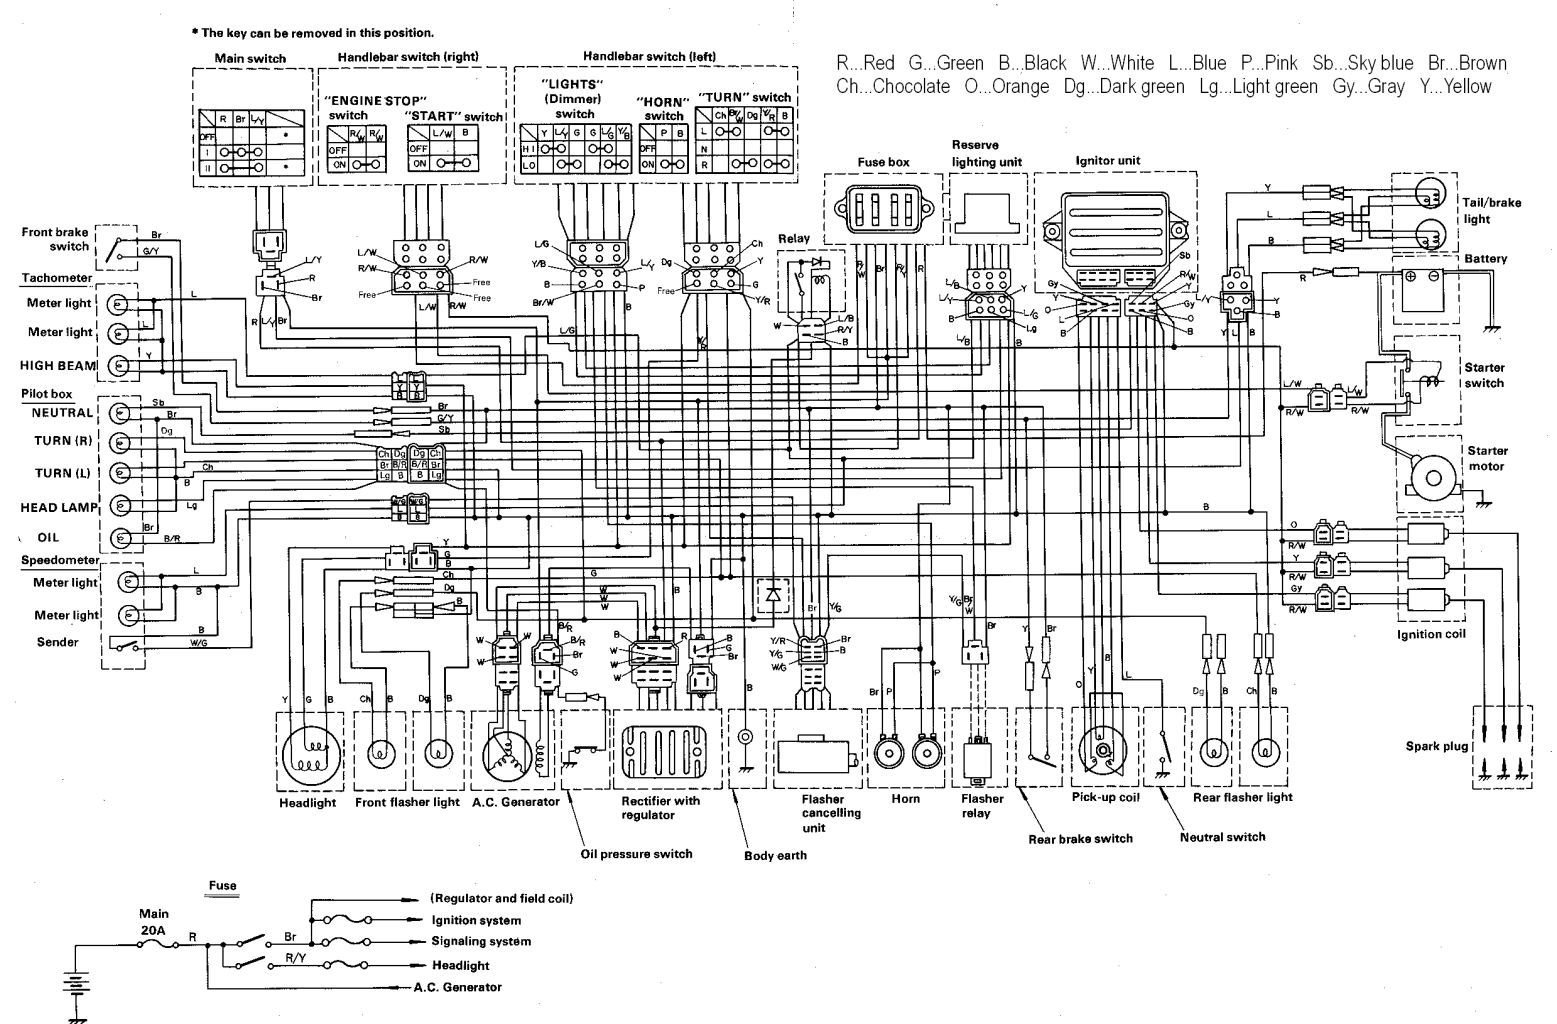 1982 f250 wiring diagram 1981 yamaha seca wiring diagram - wiring diagram